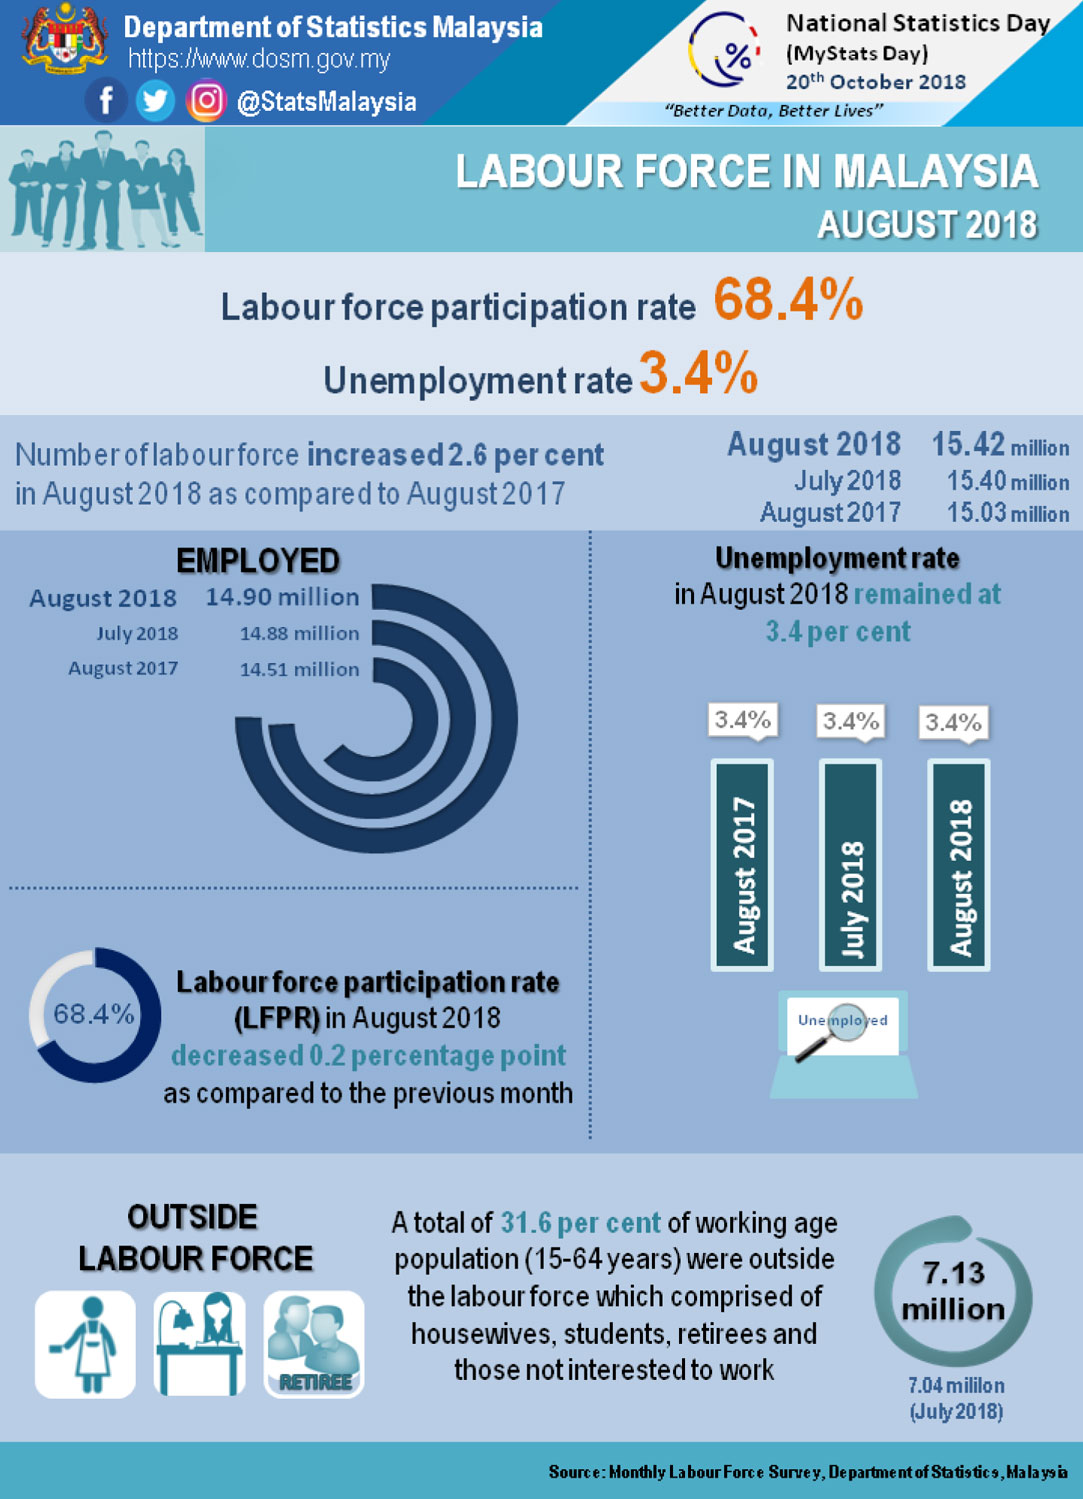 Key statistics of Malaysia's labour force in August 2018